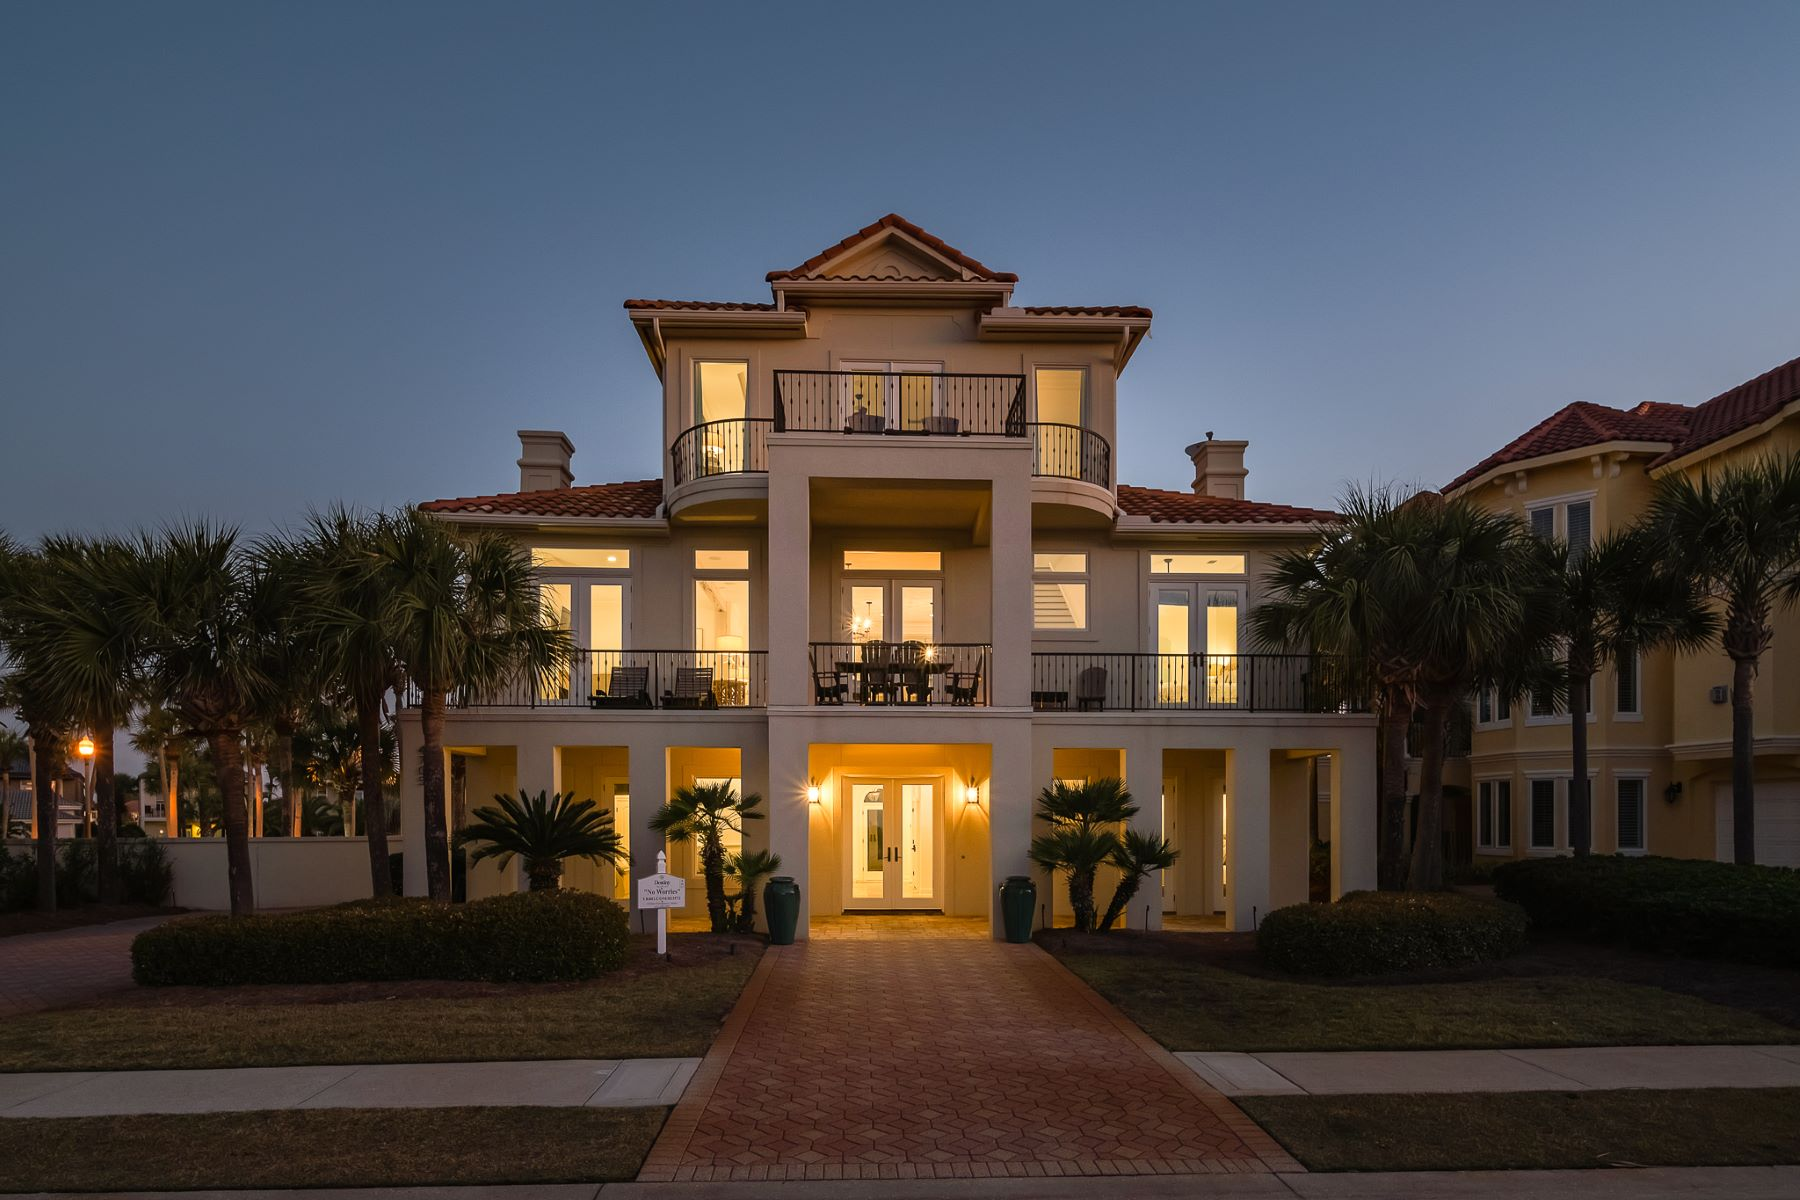 Single Family Homes for Active at 4705 Ocean Boulevard, Destin, FL 32541 4705 Ocean Boulevard Destin, Florida 32541 United States